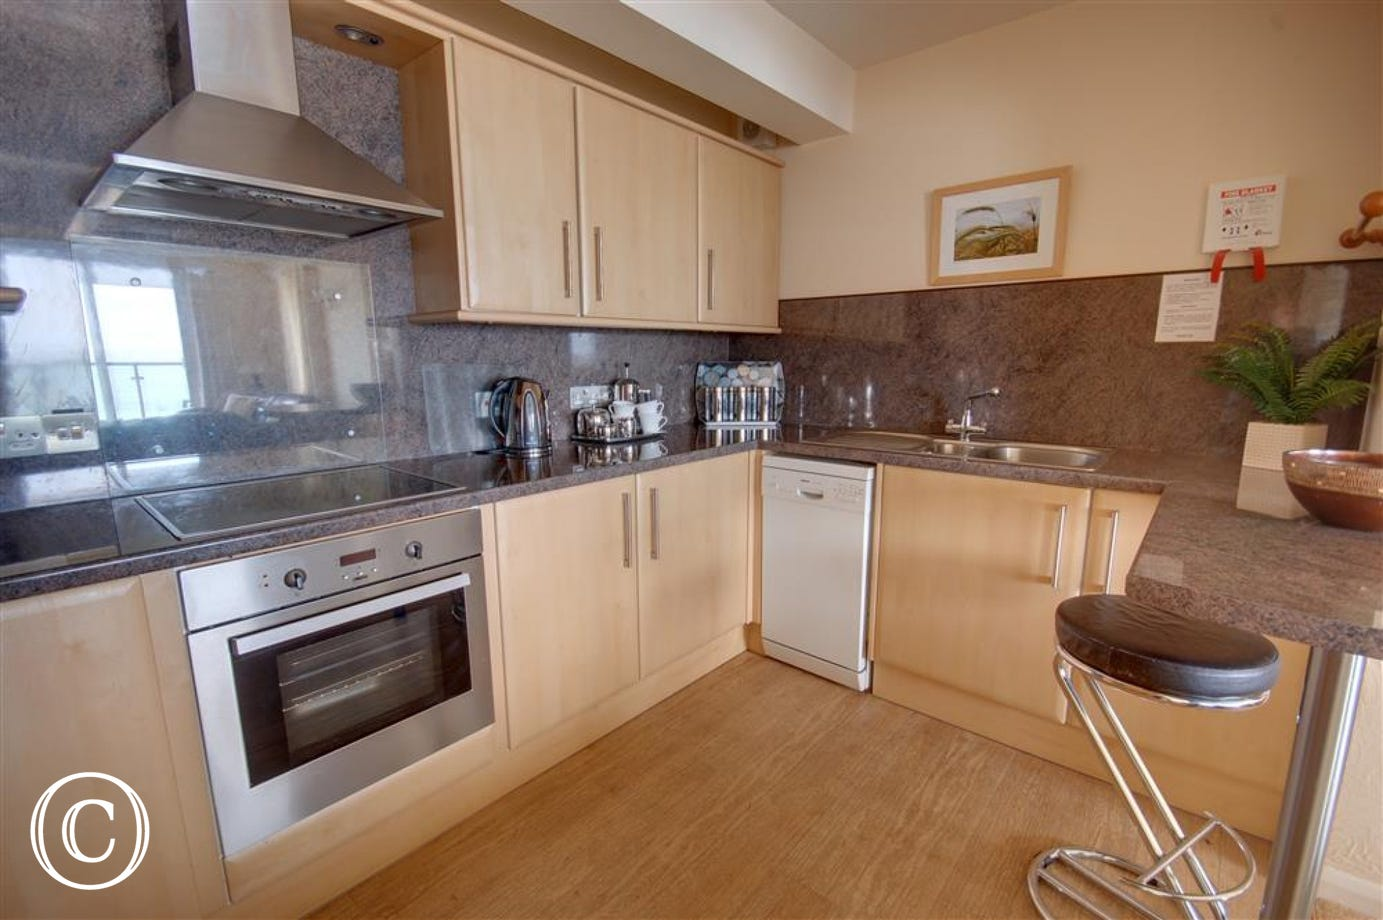 A modern stylish well equipped and fully fitted maple kitchen to the rear and has patio doors to a balcony